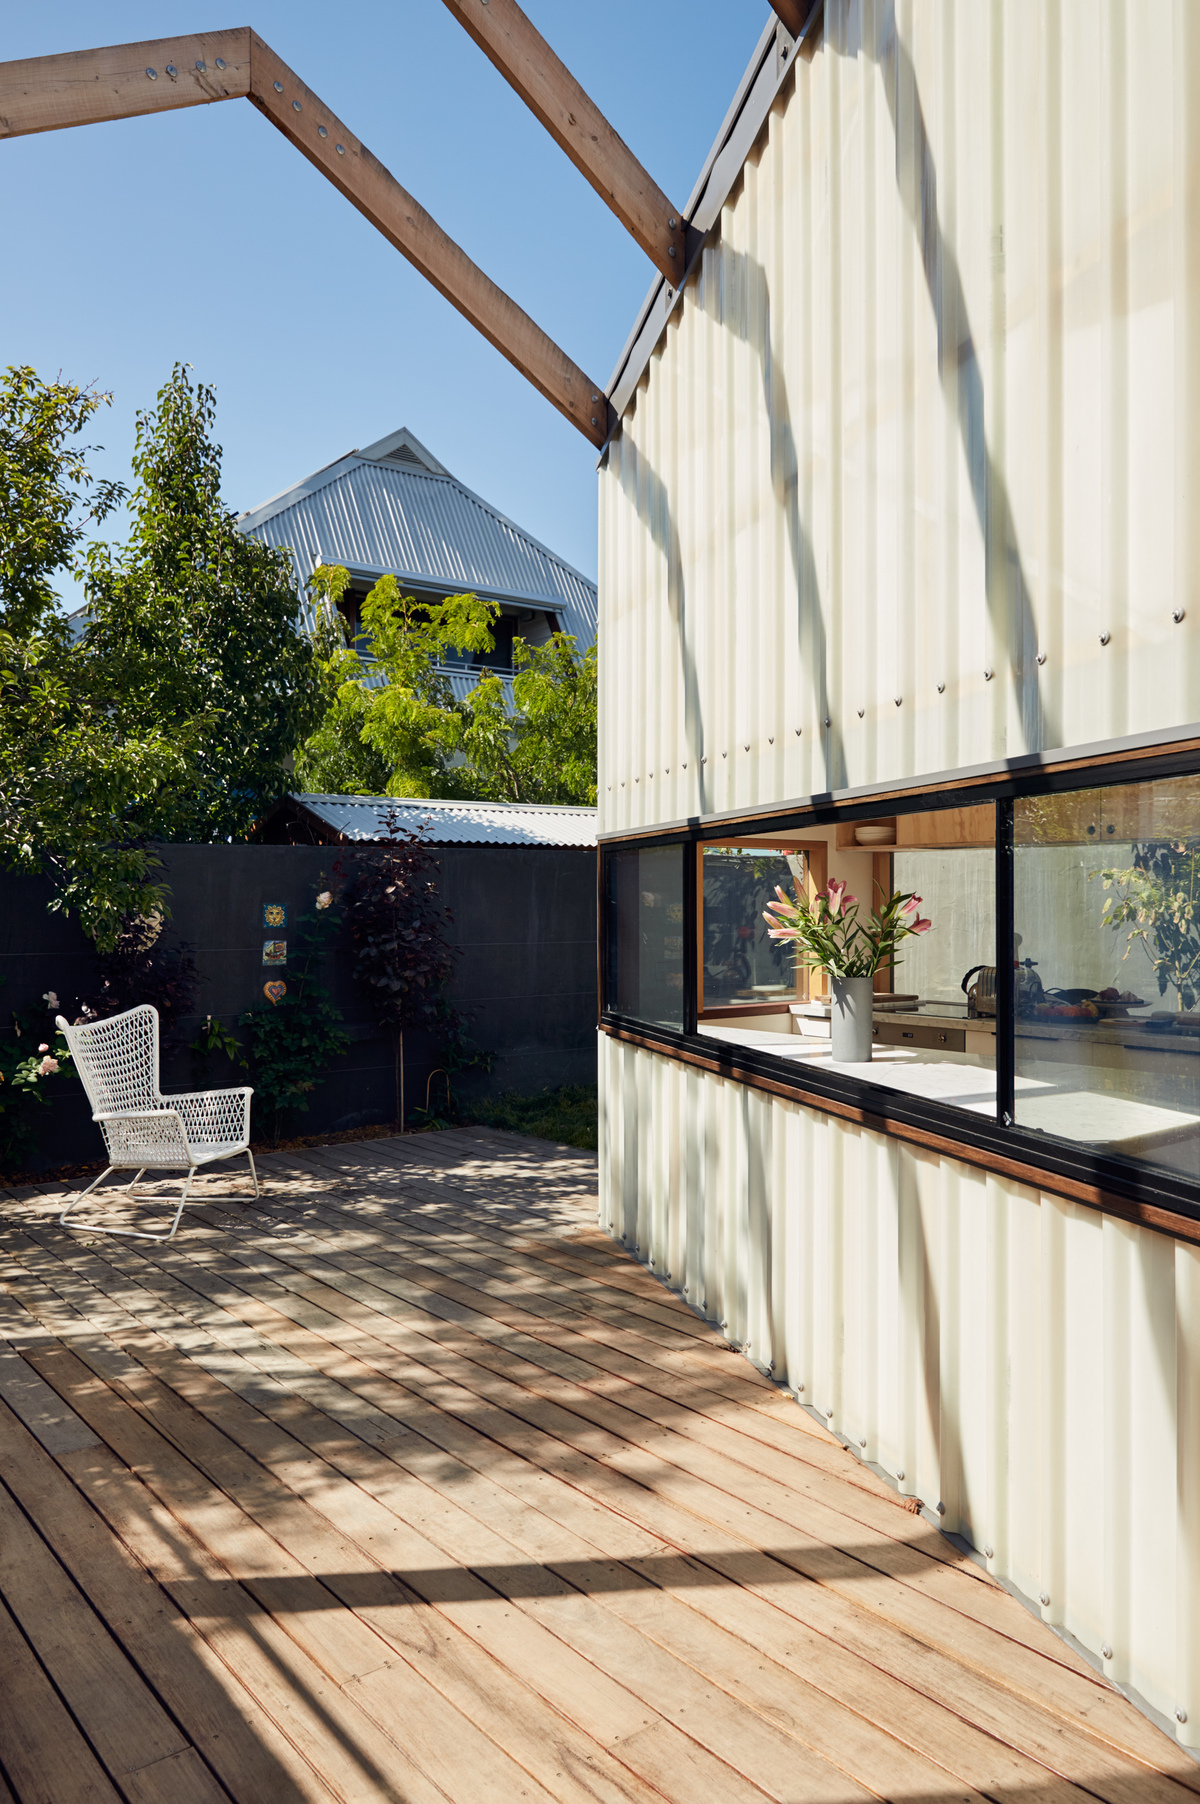 Tiny Addition Proves How Useful a Small, Considered Space Can Be